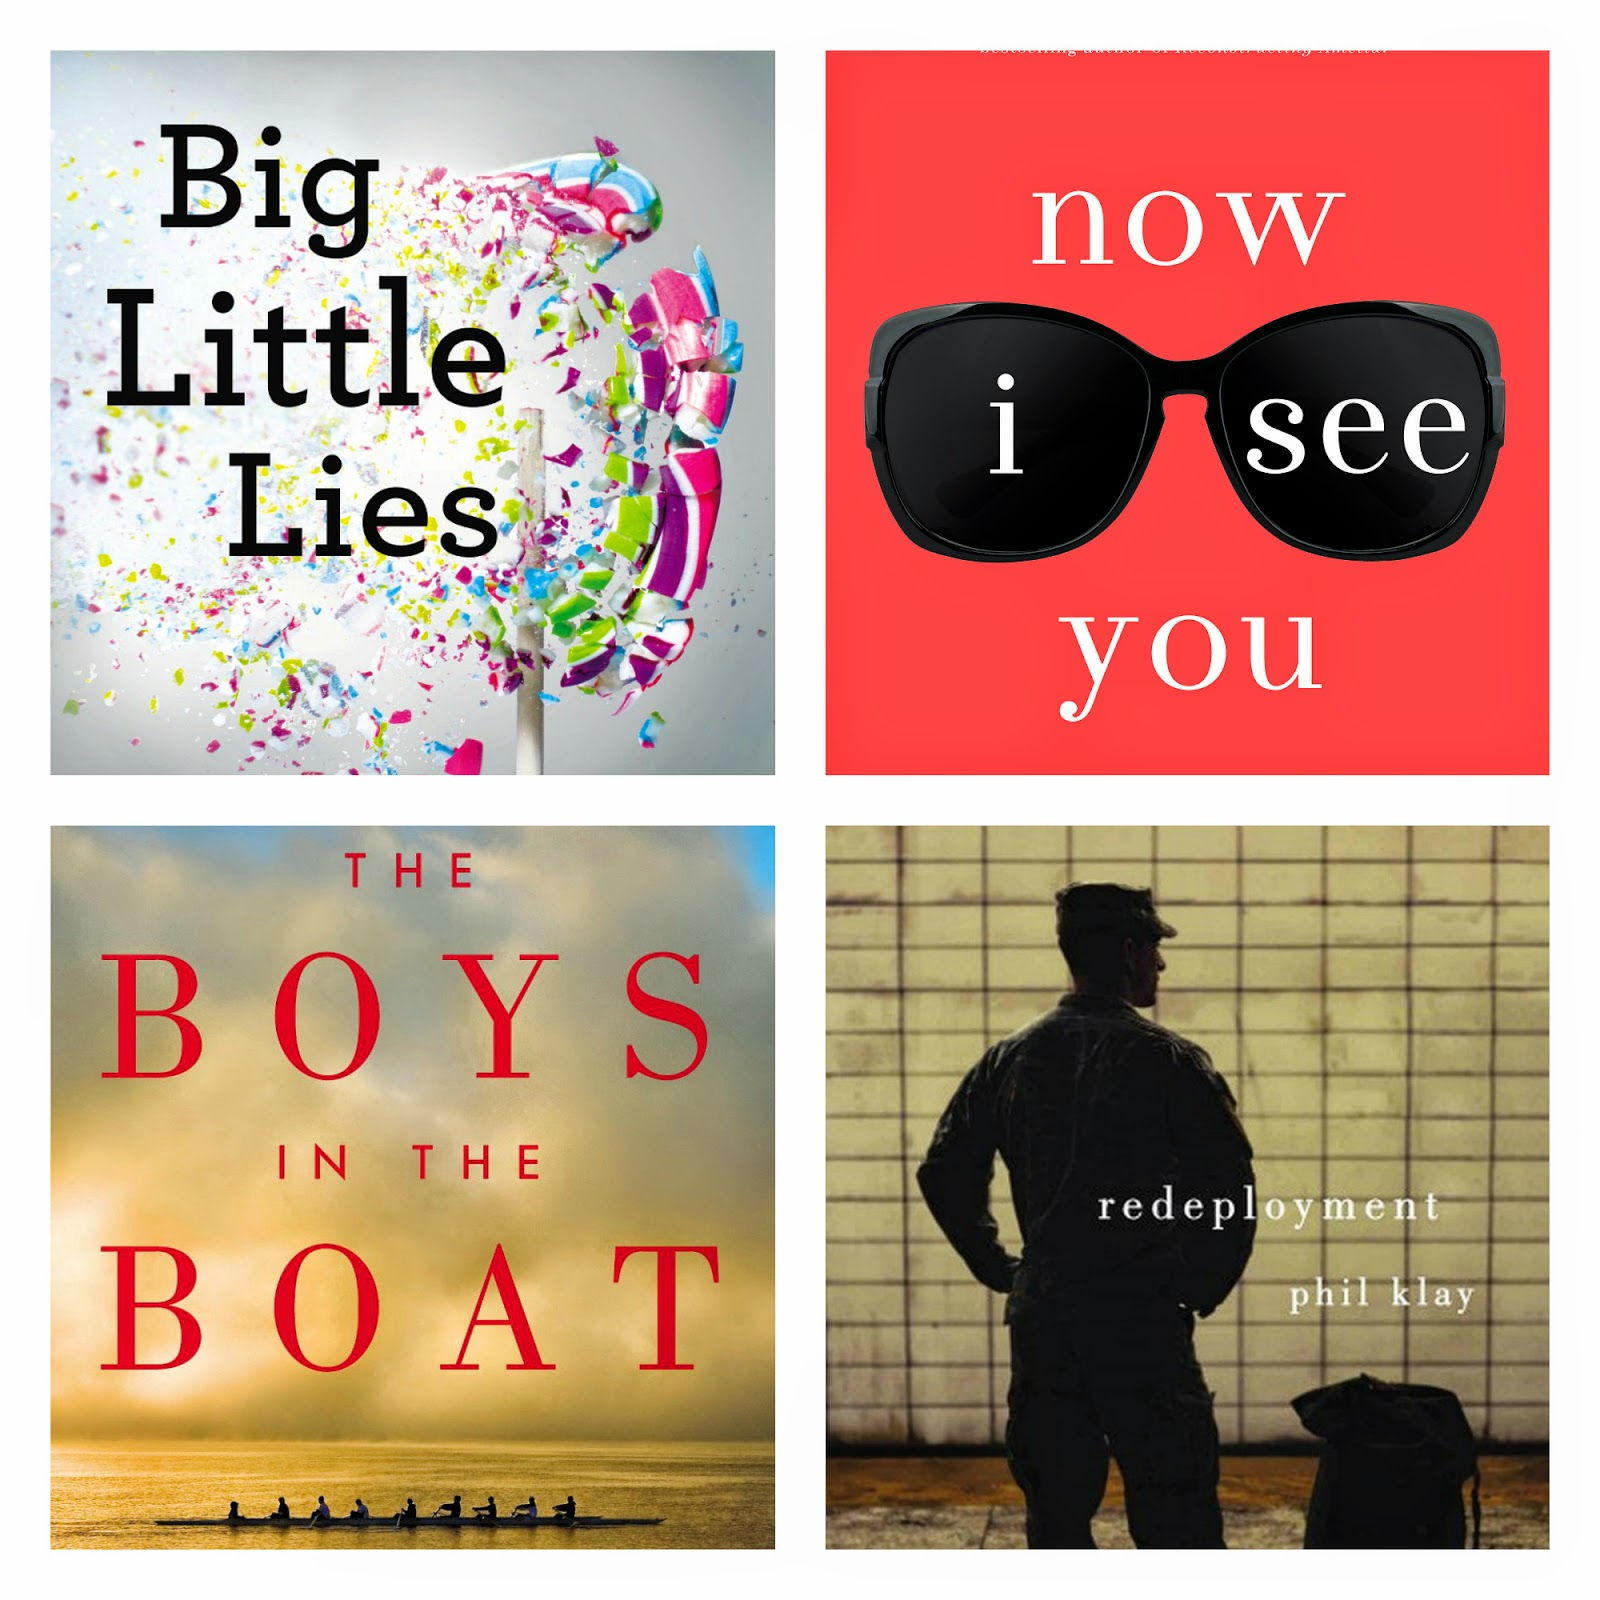 52 books in 52 weeks. The boys in the boat. Redeployment. Big little lies. Now I see you